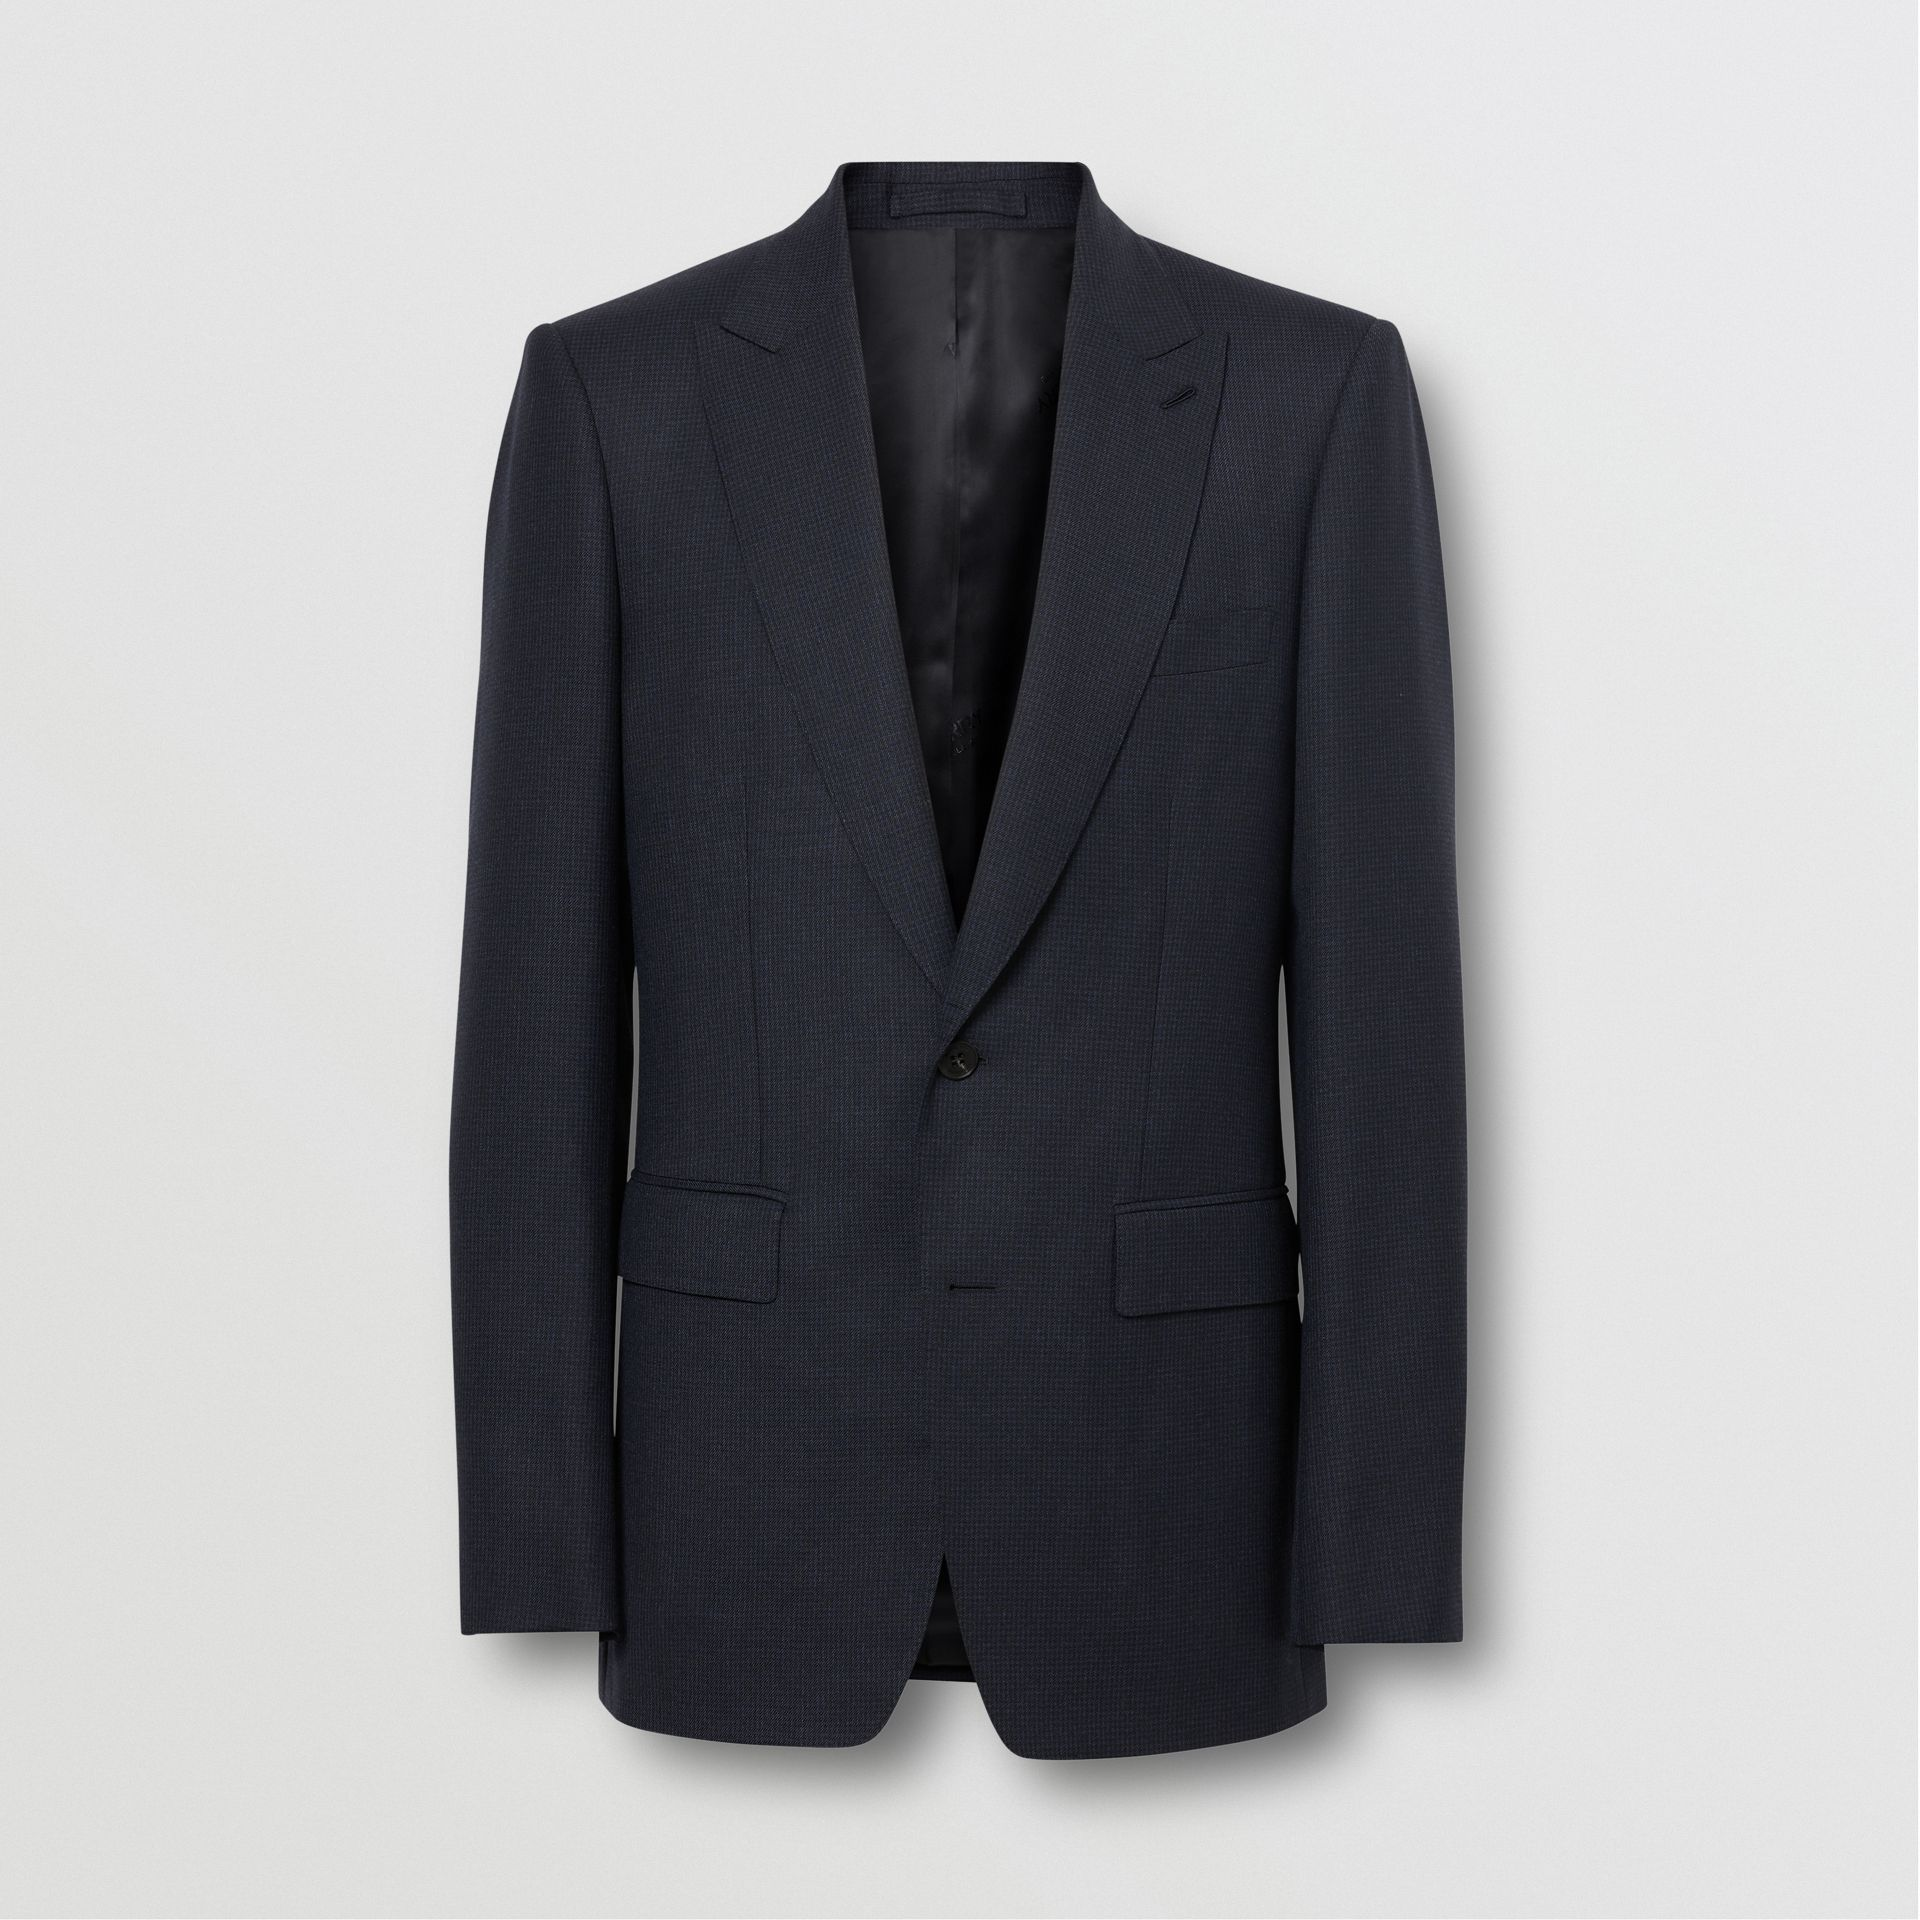 English Fit Puppytooth Check Wool Suit in Dark Navy - Men | Burberry Singapore - gallery image 3